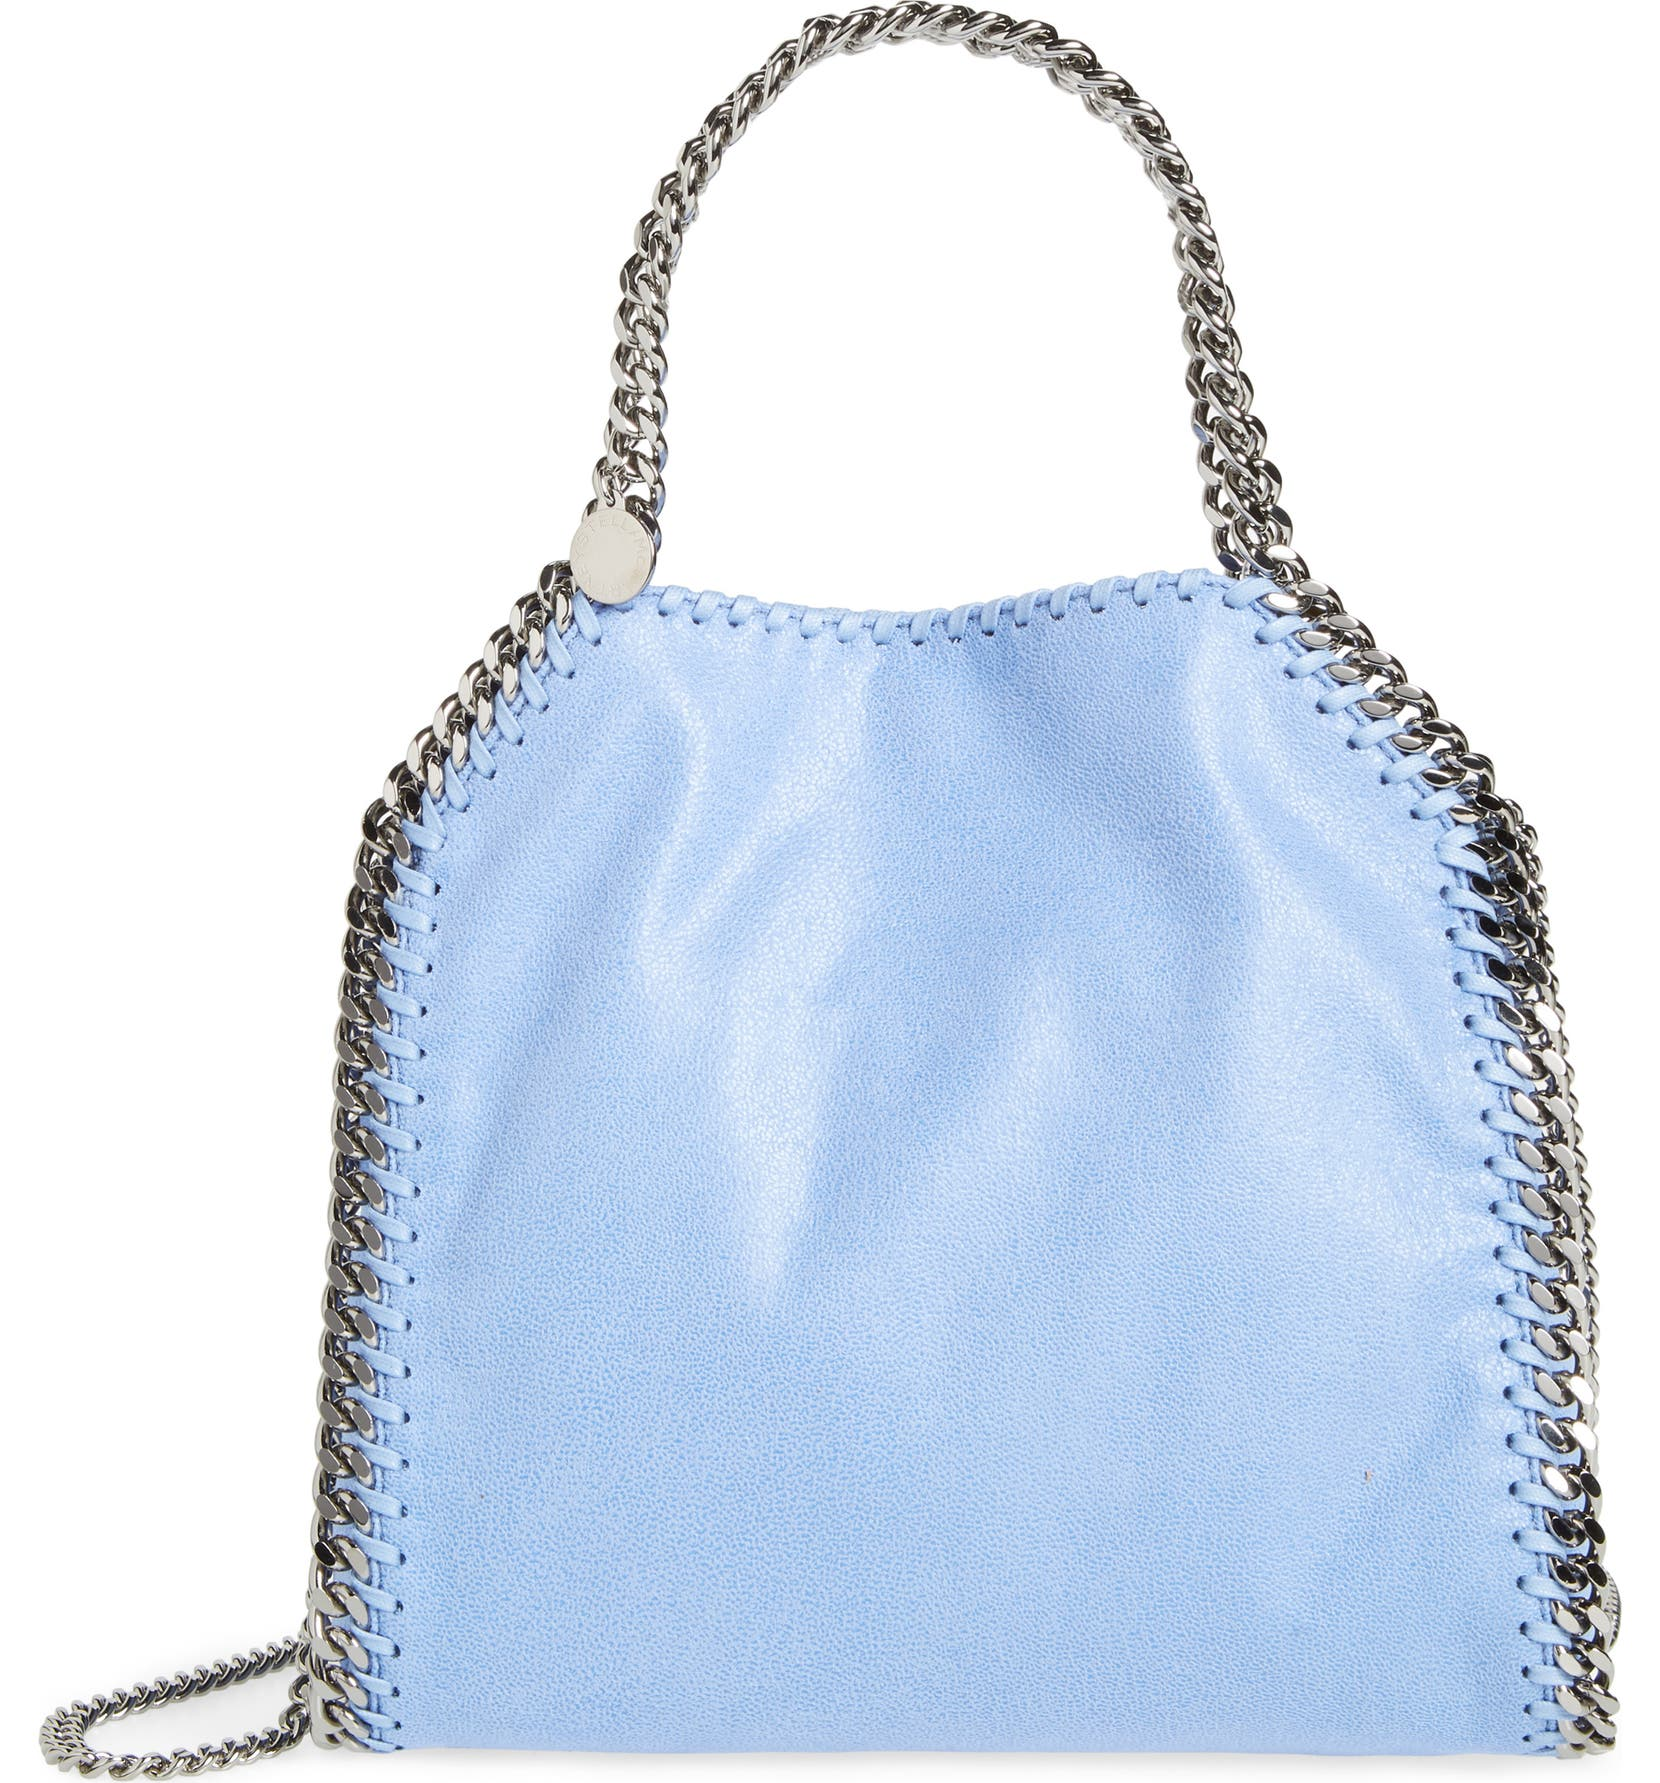 0f7ce287d4bb Stella McCartney  Mini Falabella - Shaggy Deer  Faux Leather Tote ...